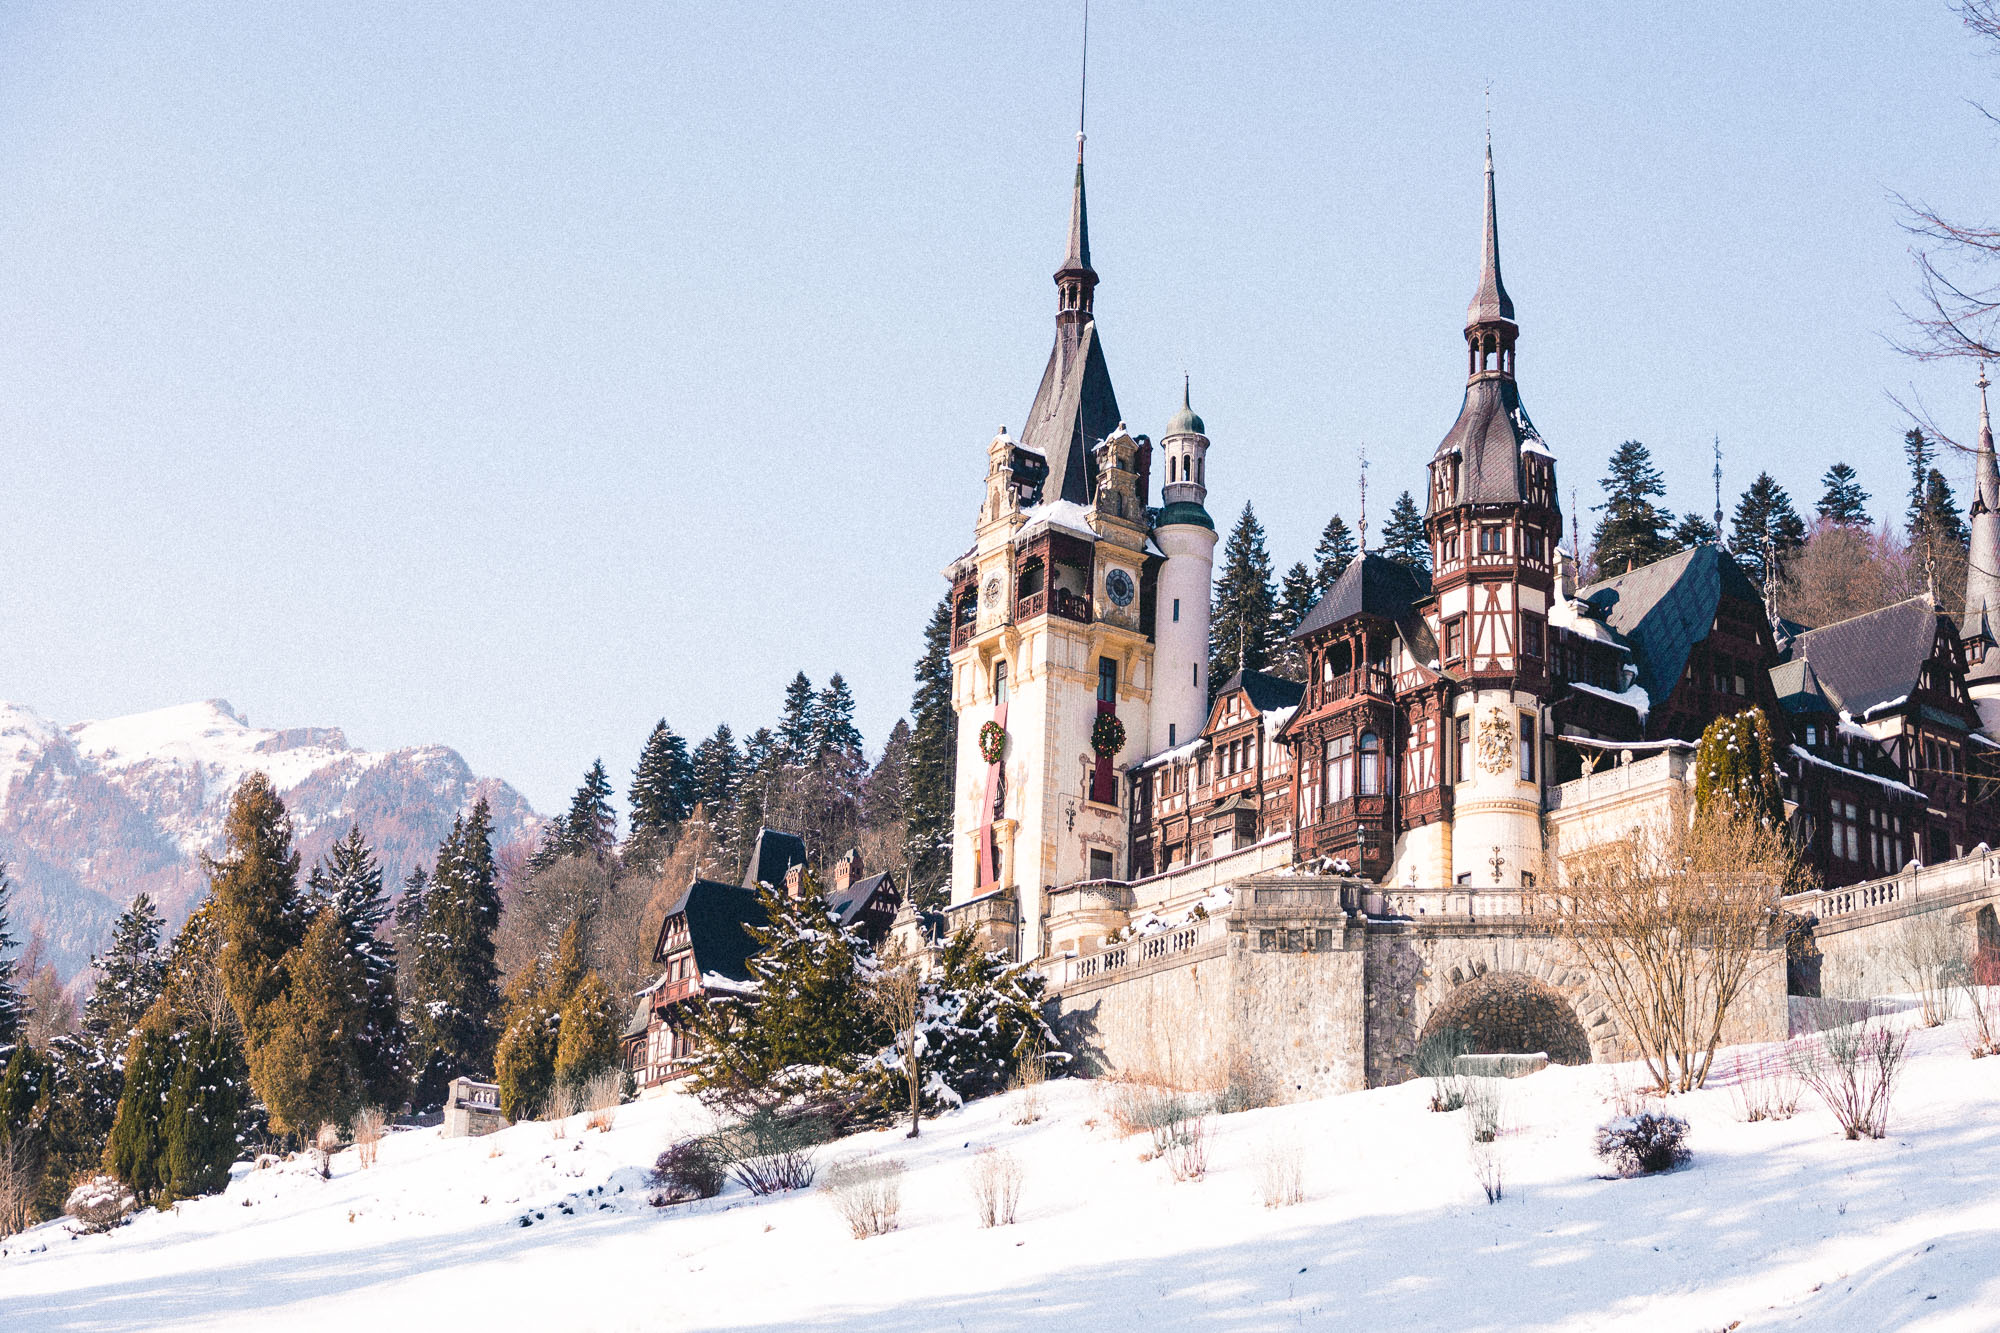 Peles Castle in Sinaia, near the Transylvania region of Romania